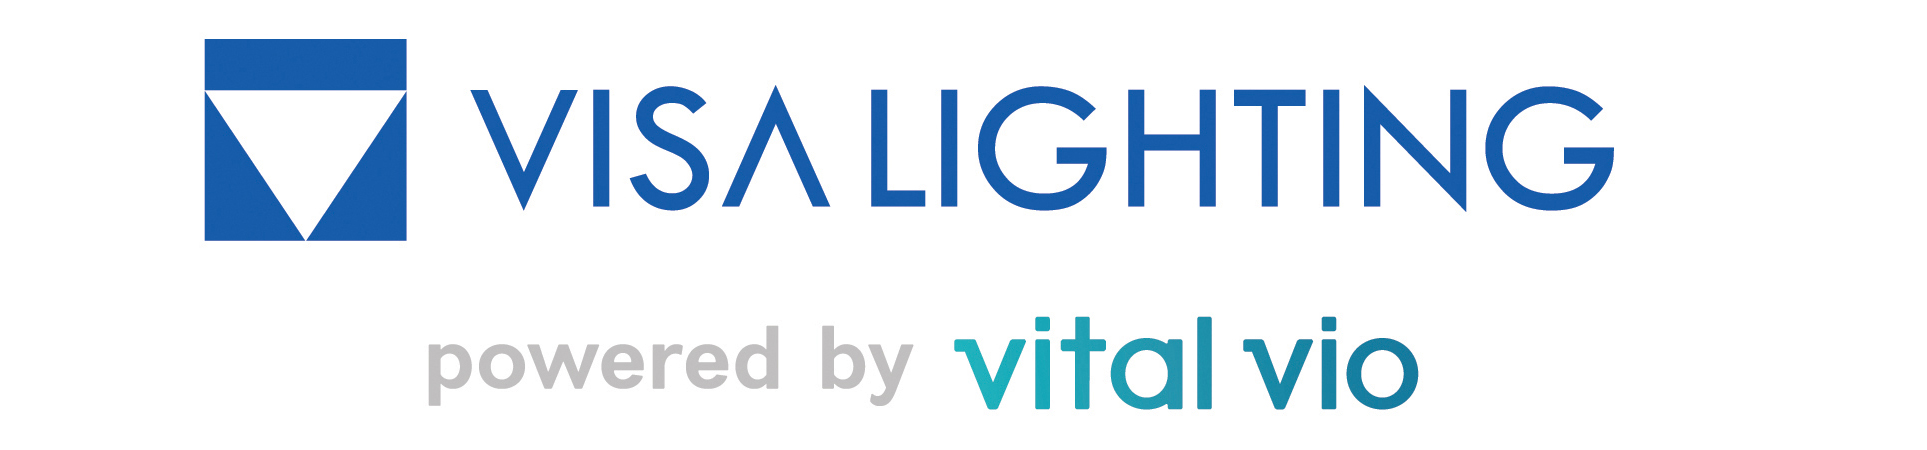 Visa Lighting powered by Vital Vio logo